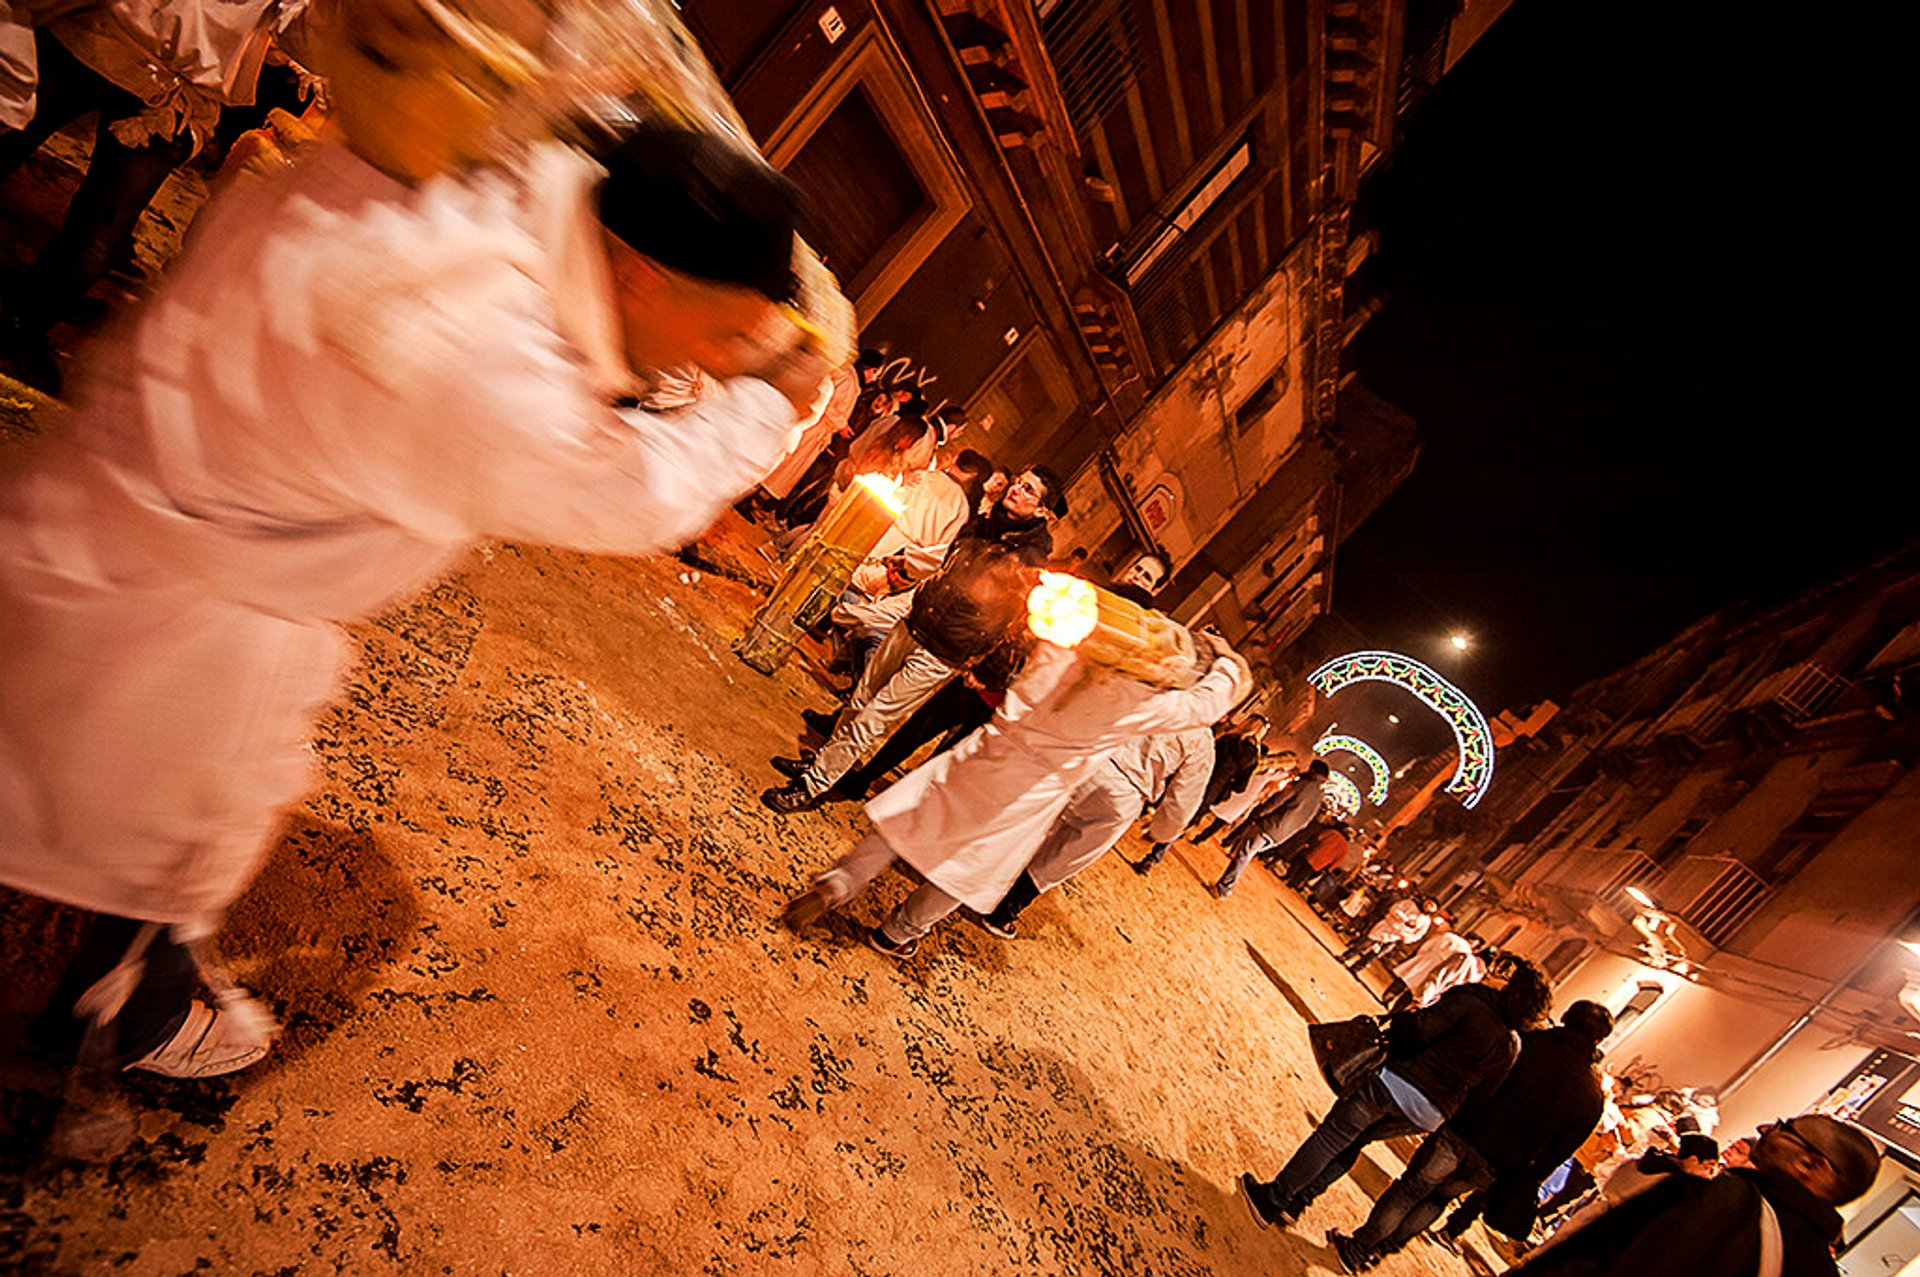 Best time to see Saint Agata Festival in Sicily 2020